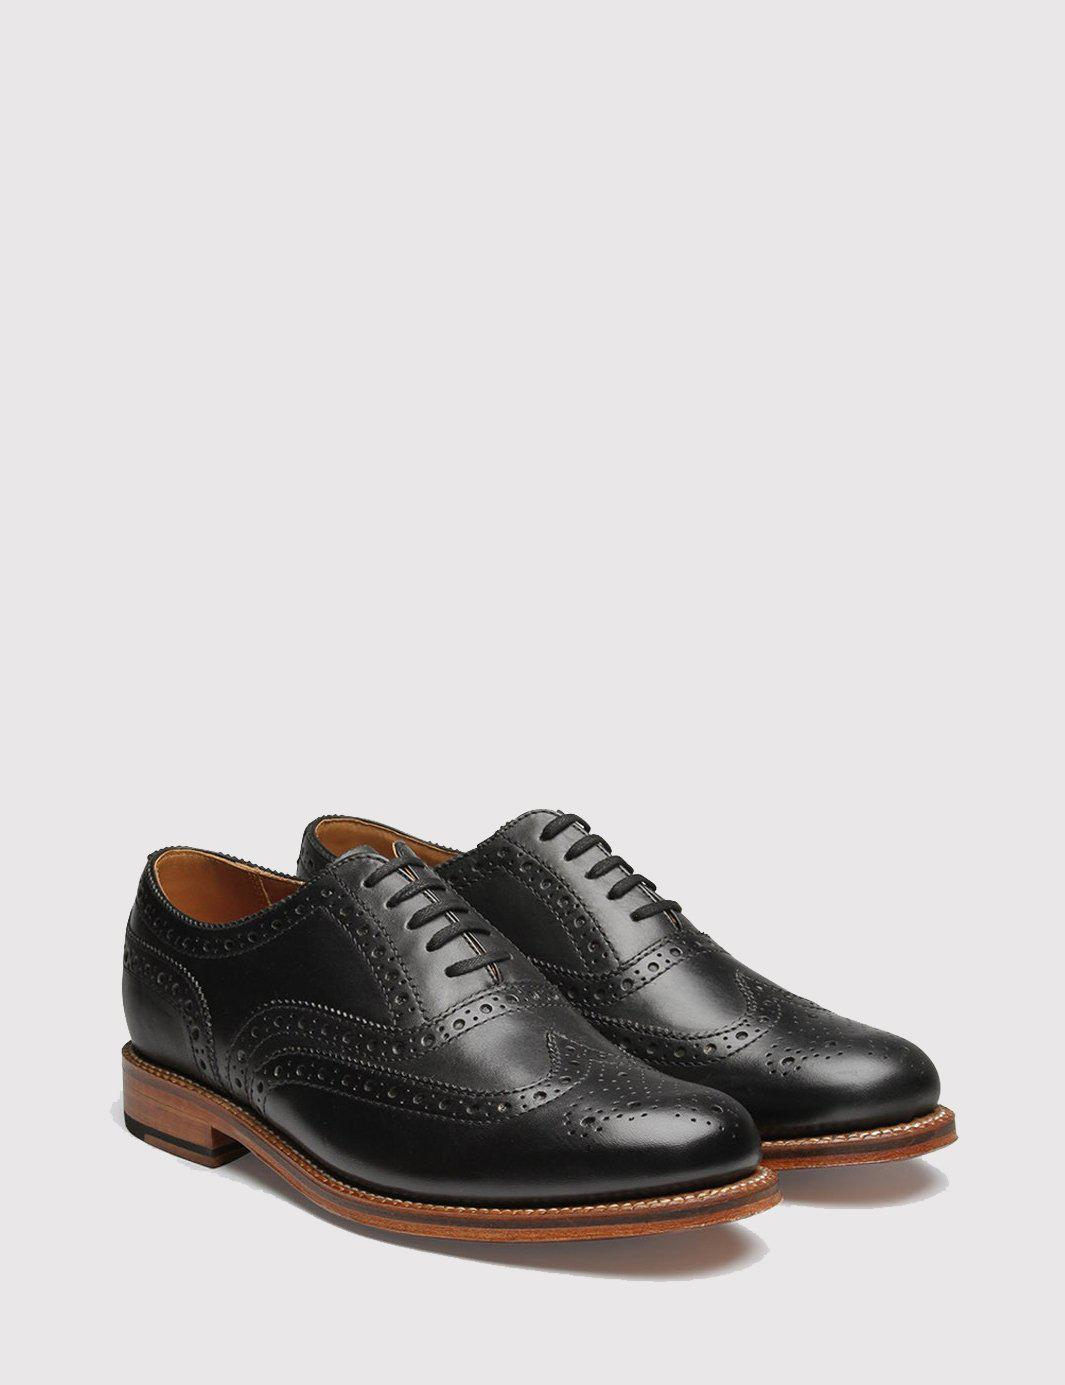 Mens Angus Leather Wingtip Balmorals Grenson Free Shipping Clearance Store Clearance Limited Edition Cool Shopping Under 50 Dollars Sale Fashionable 1fhUb1nTB